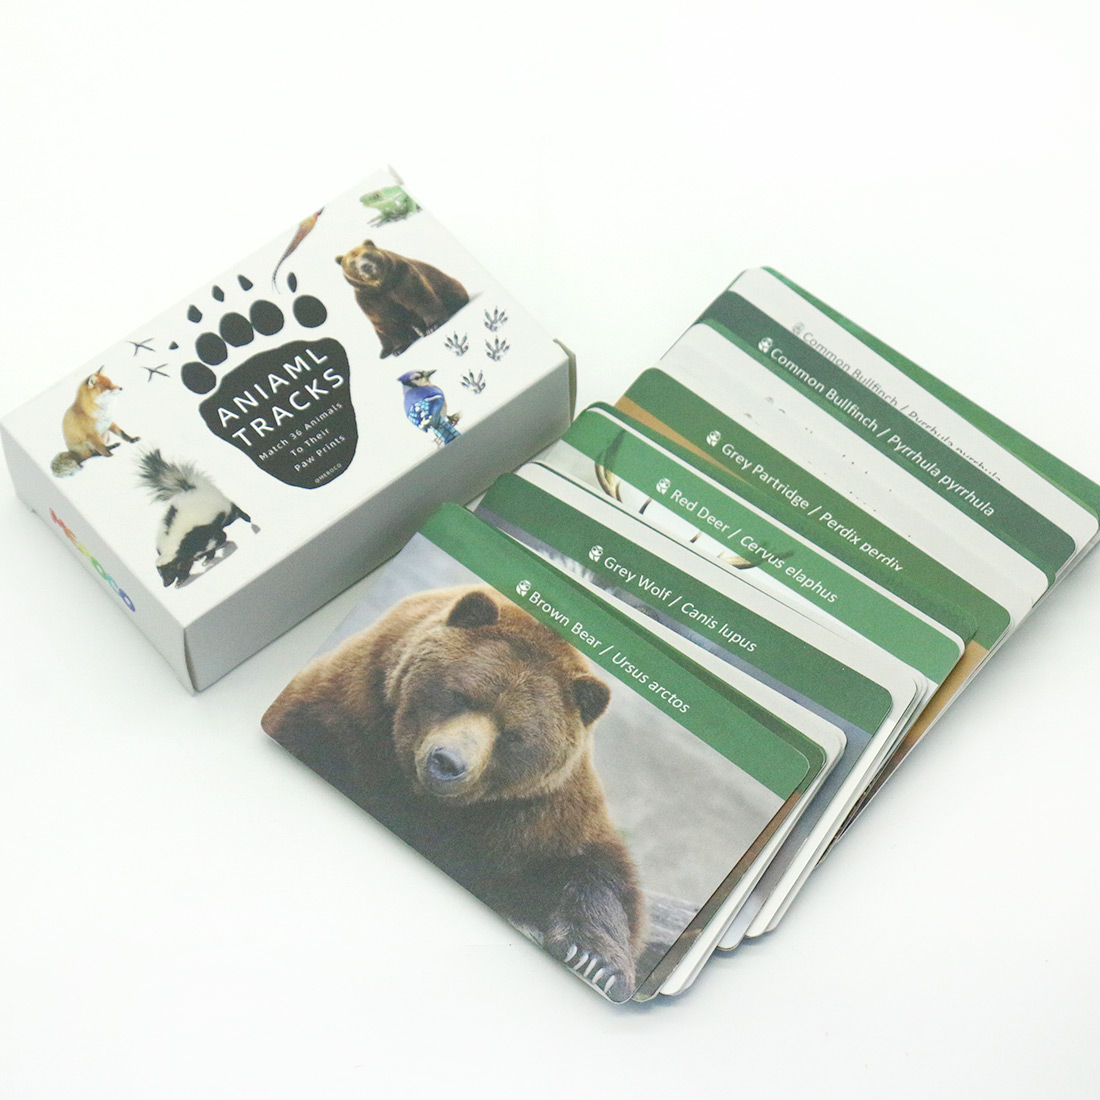 Montessori Material Animals  Footprints Flash Cards Montessori English Learn Card Early Educational Toy Memory Game for Children 1